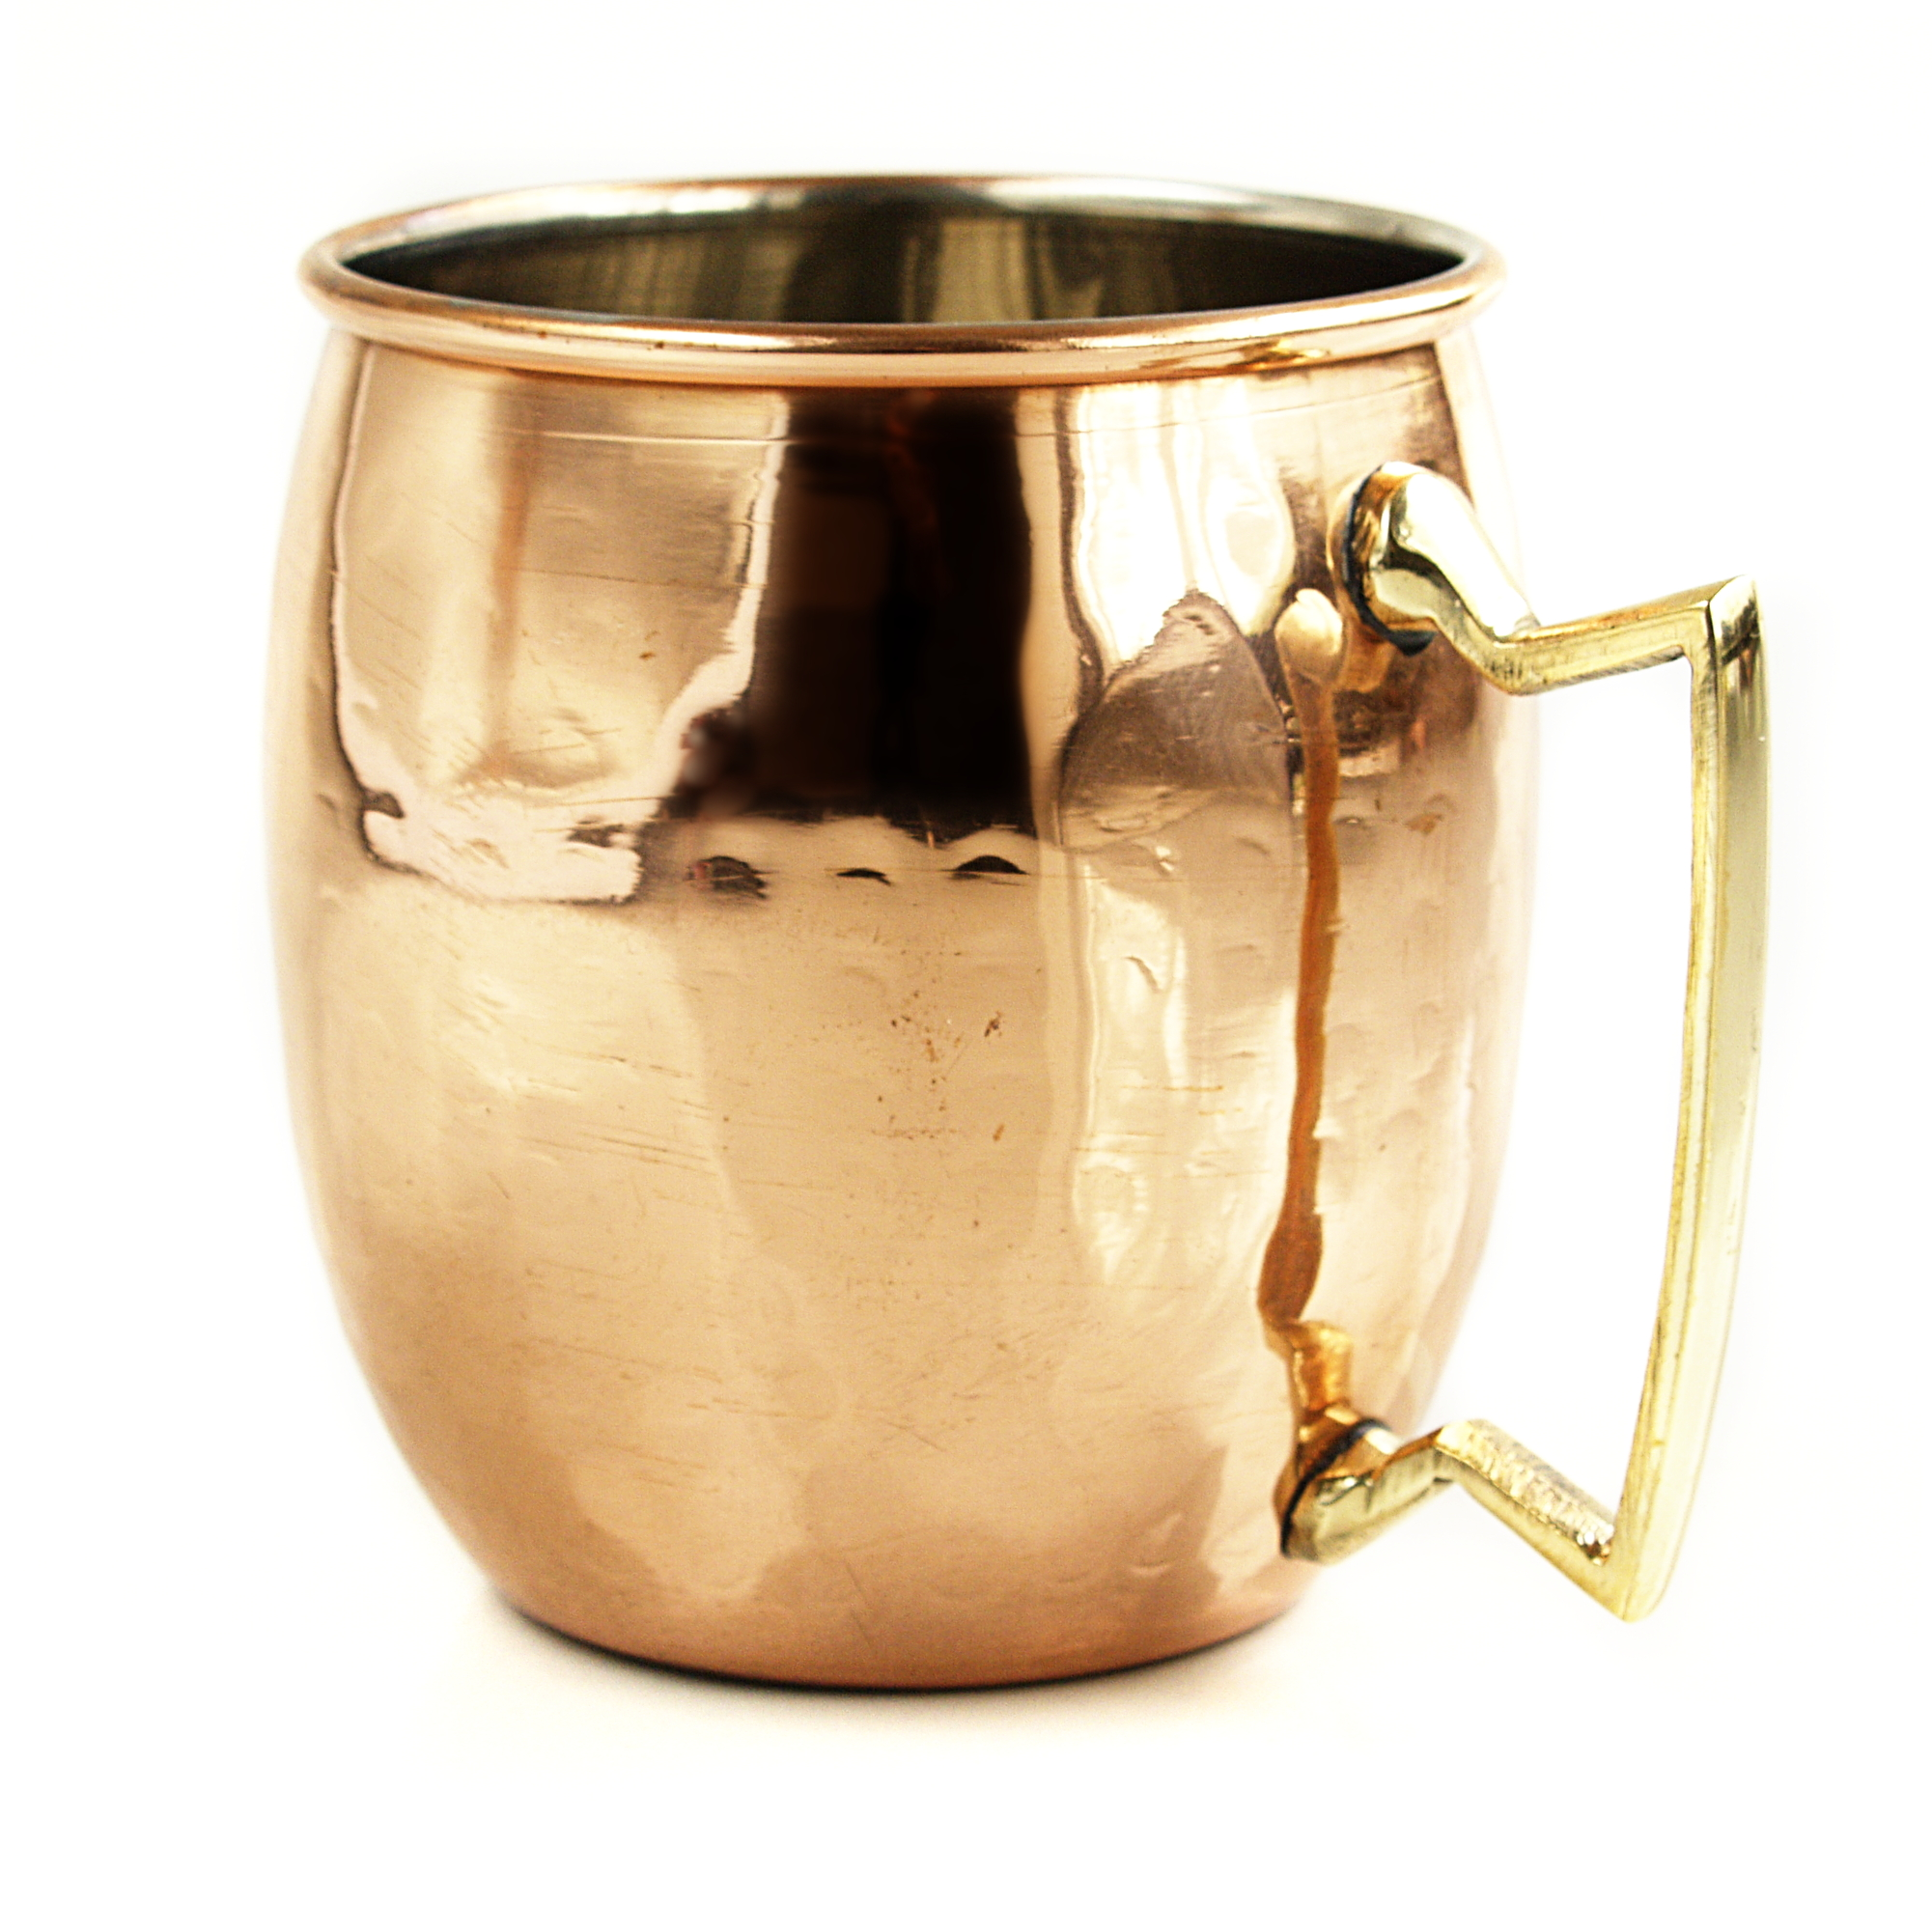 Select Home Hammered Copper 16 Ounce Moscow Mule Drinking Mug